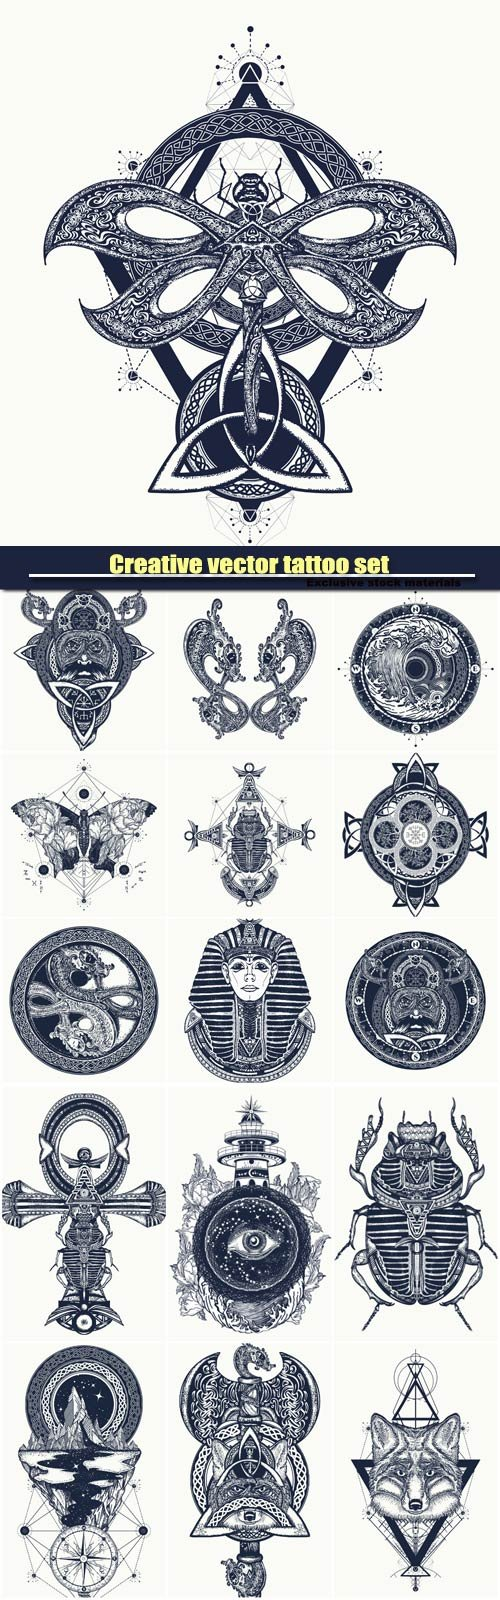 Creative vector tattoo set